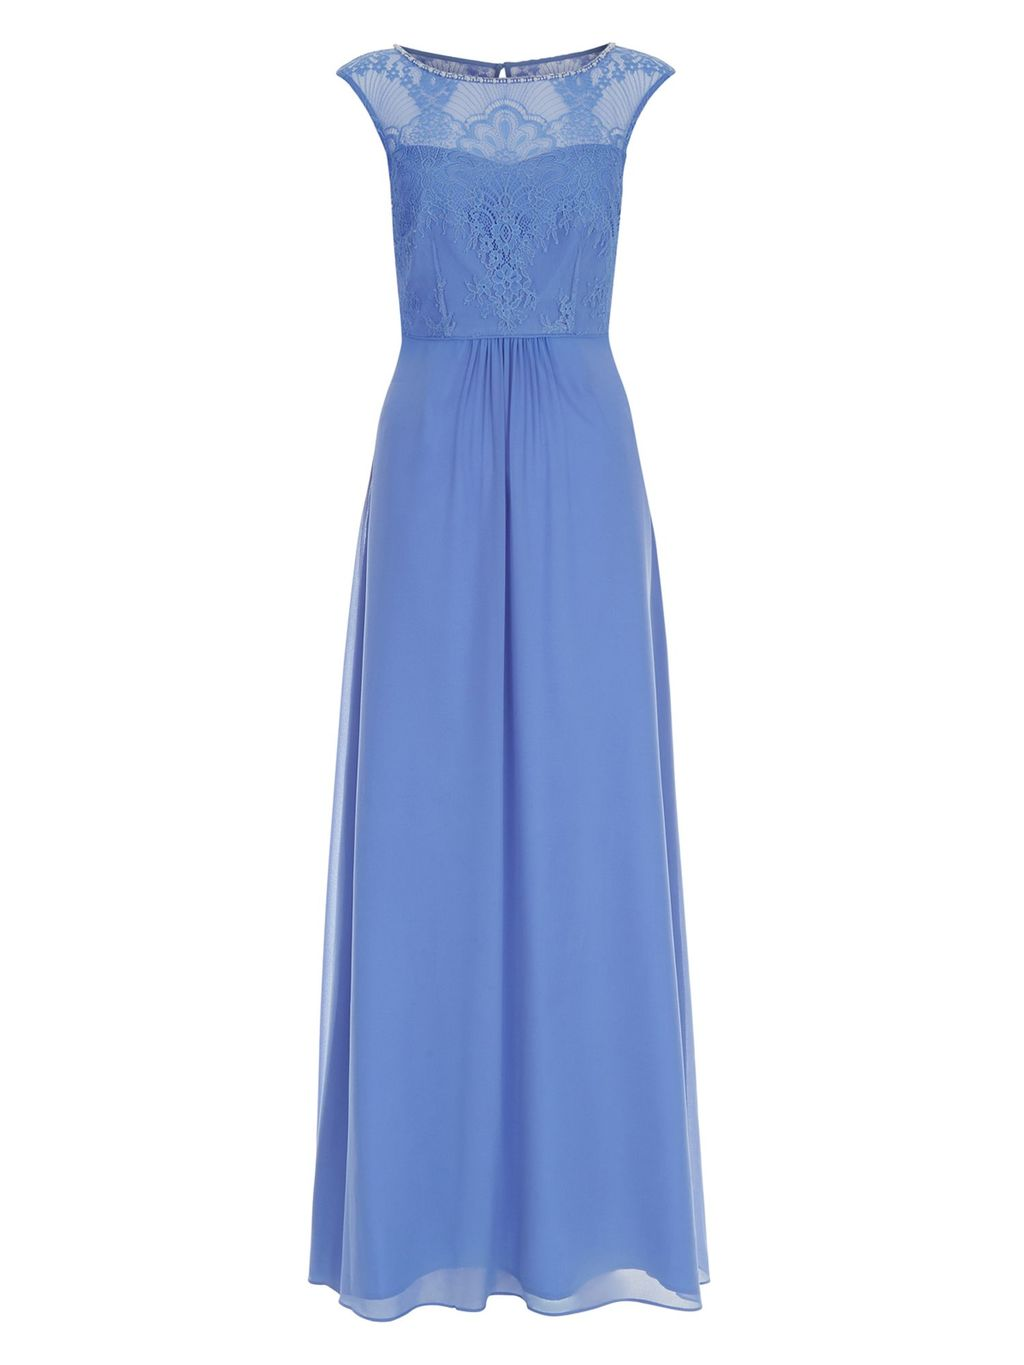 Harmony Dress, Blue - pattern: plain; sleeve style: sleeveless; style: maxi dress; bust detail: sheer at bust; predominant colour: pale blue; occasions: evening; length: floor length; fit: body skimming; fibres: polyester/polyamide - 100%; neckline: crew; hip detail: soft pleats at hip/draping at hip/flared at hip; sleeve length: sleeveless; texture group: sheer fabrics/chiffon/organza etc.; pattern type: fabric; embellishment: lace; season: a/w 2016; wardrobe: event